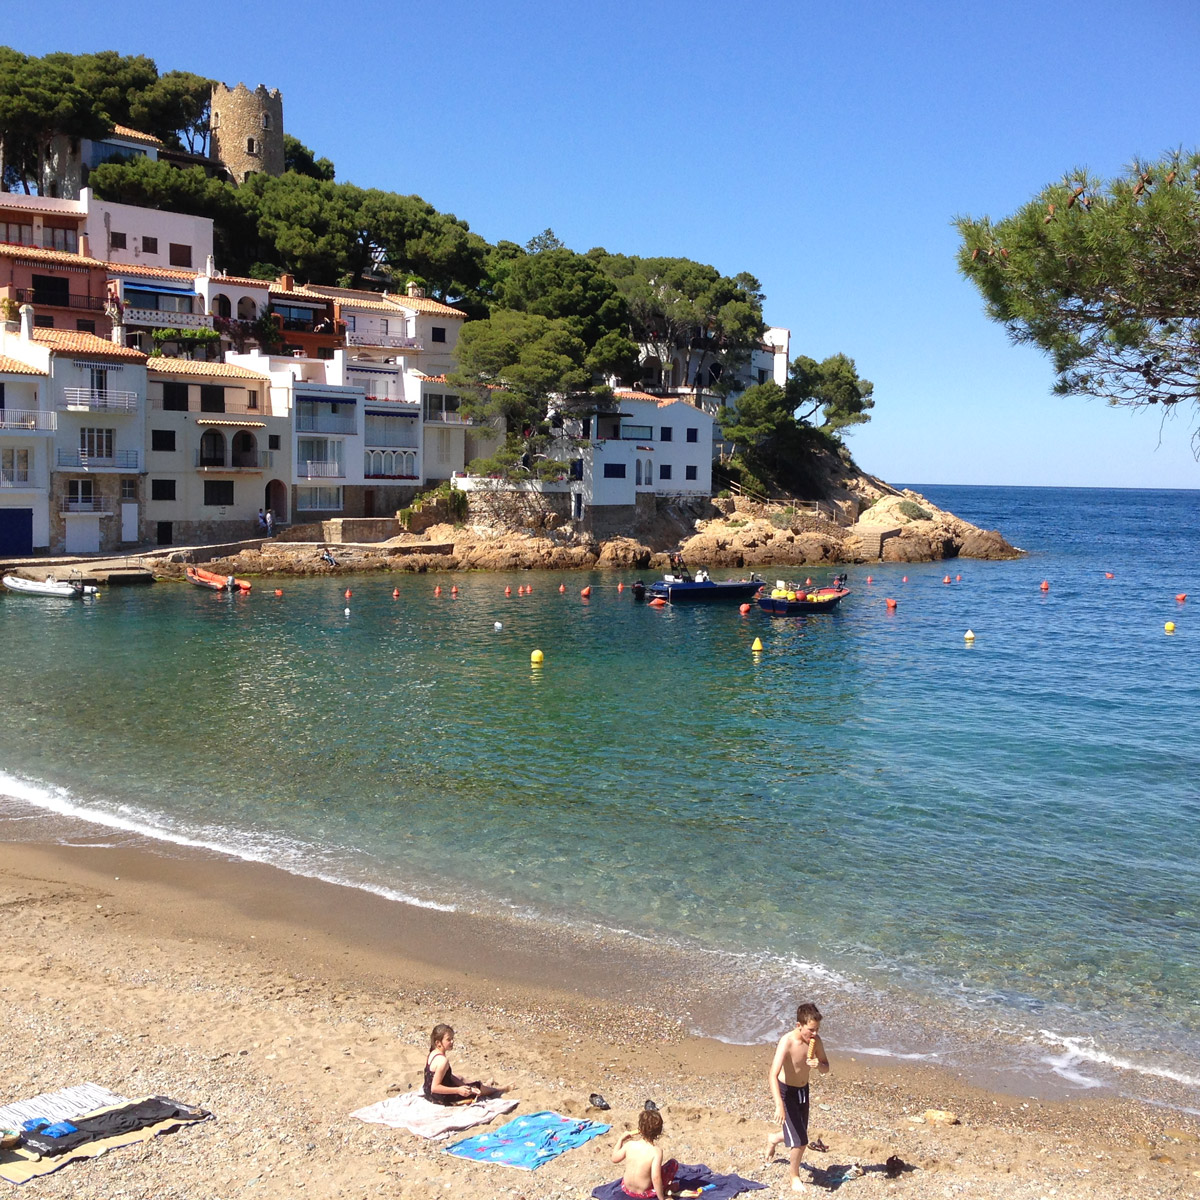 One of the most beautiful coves of the Costa Brava.